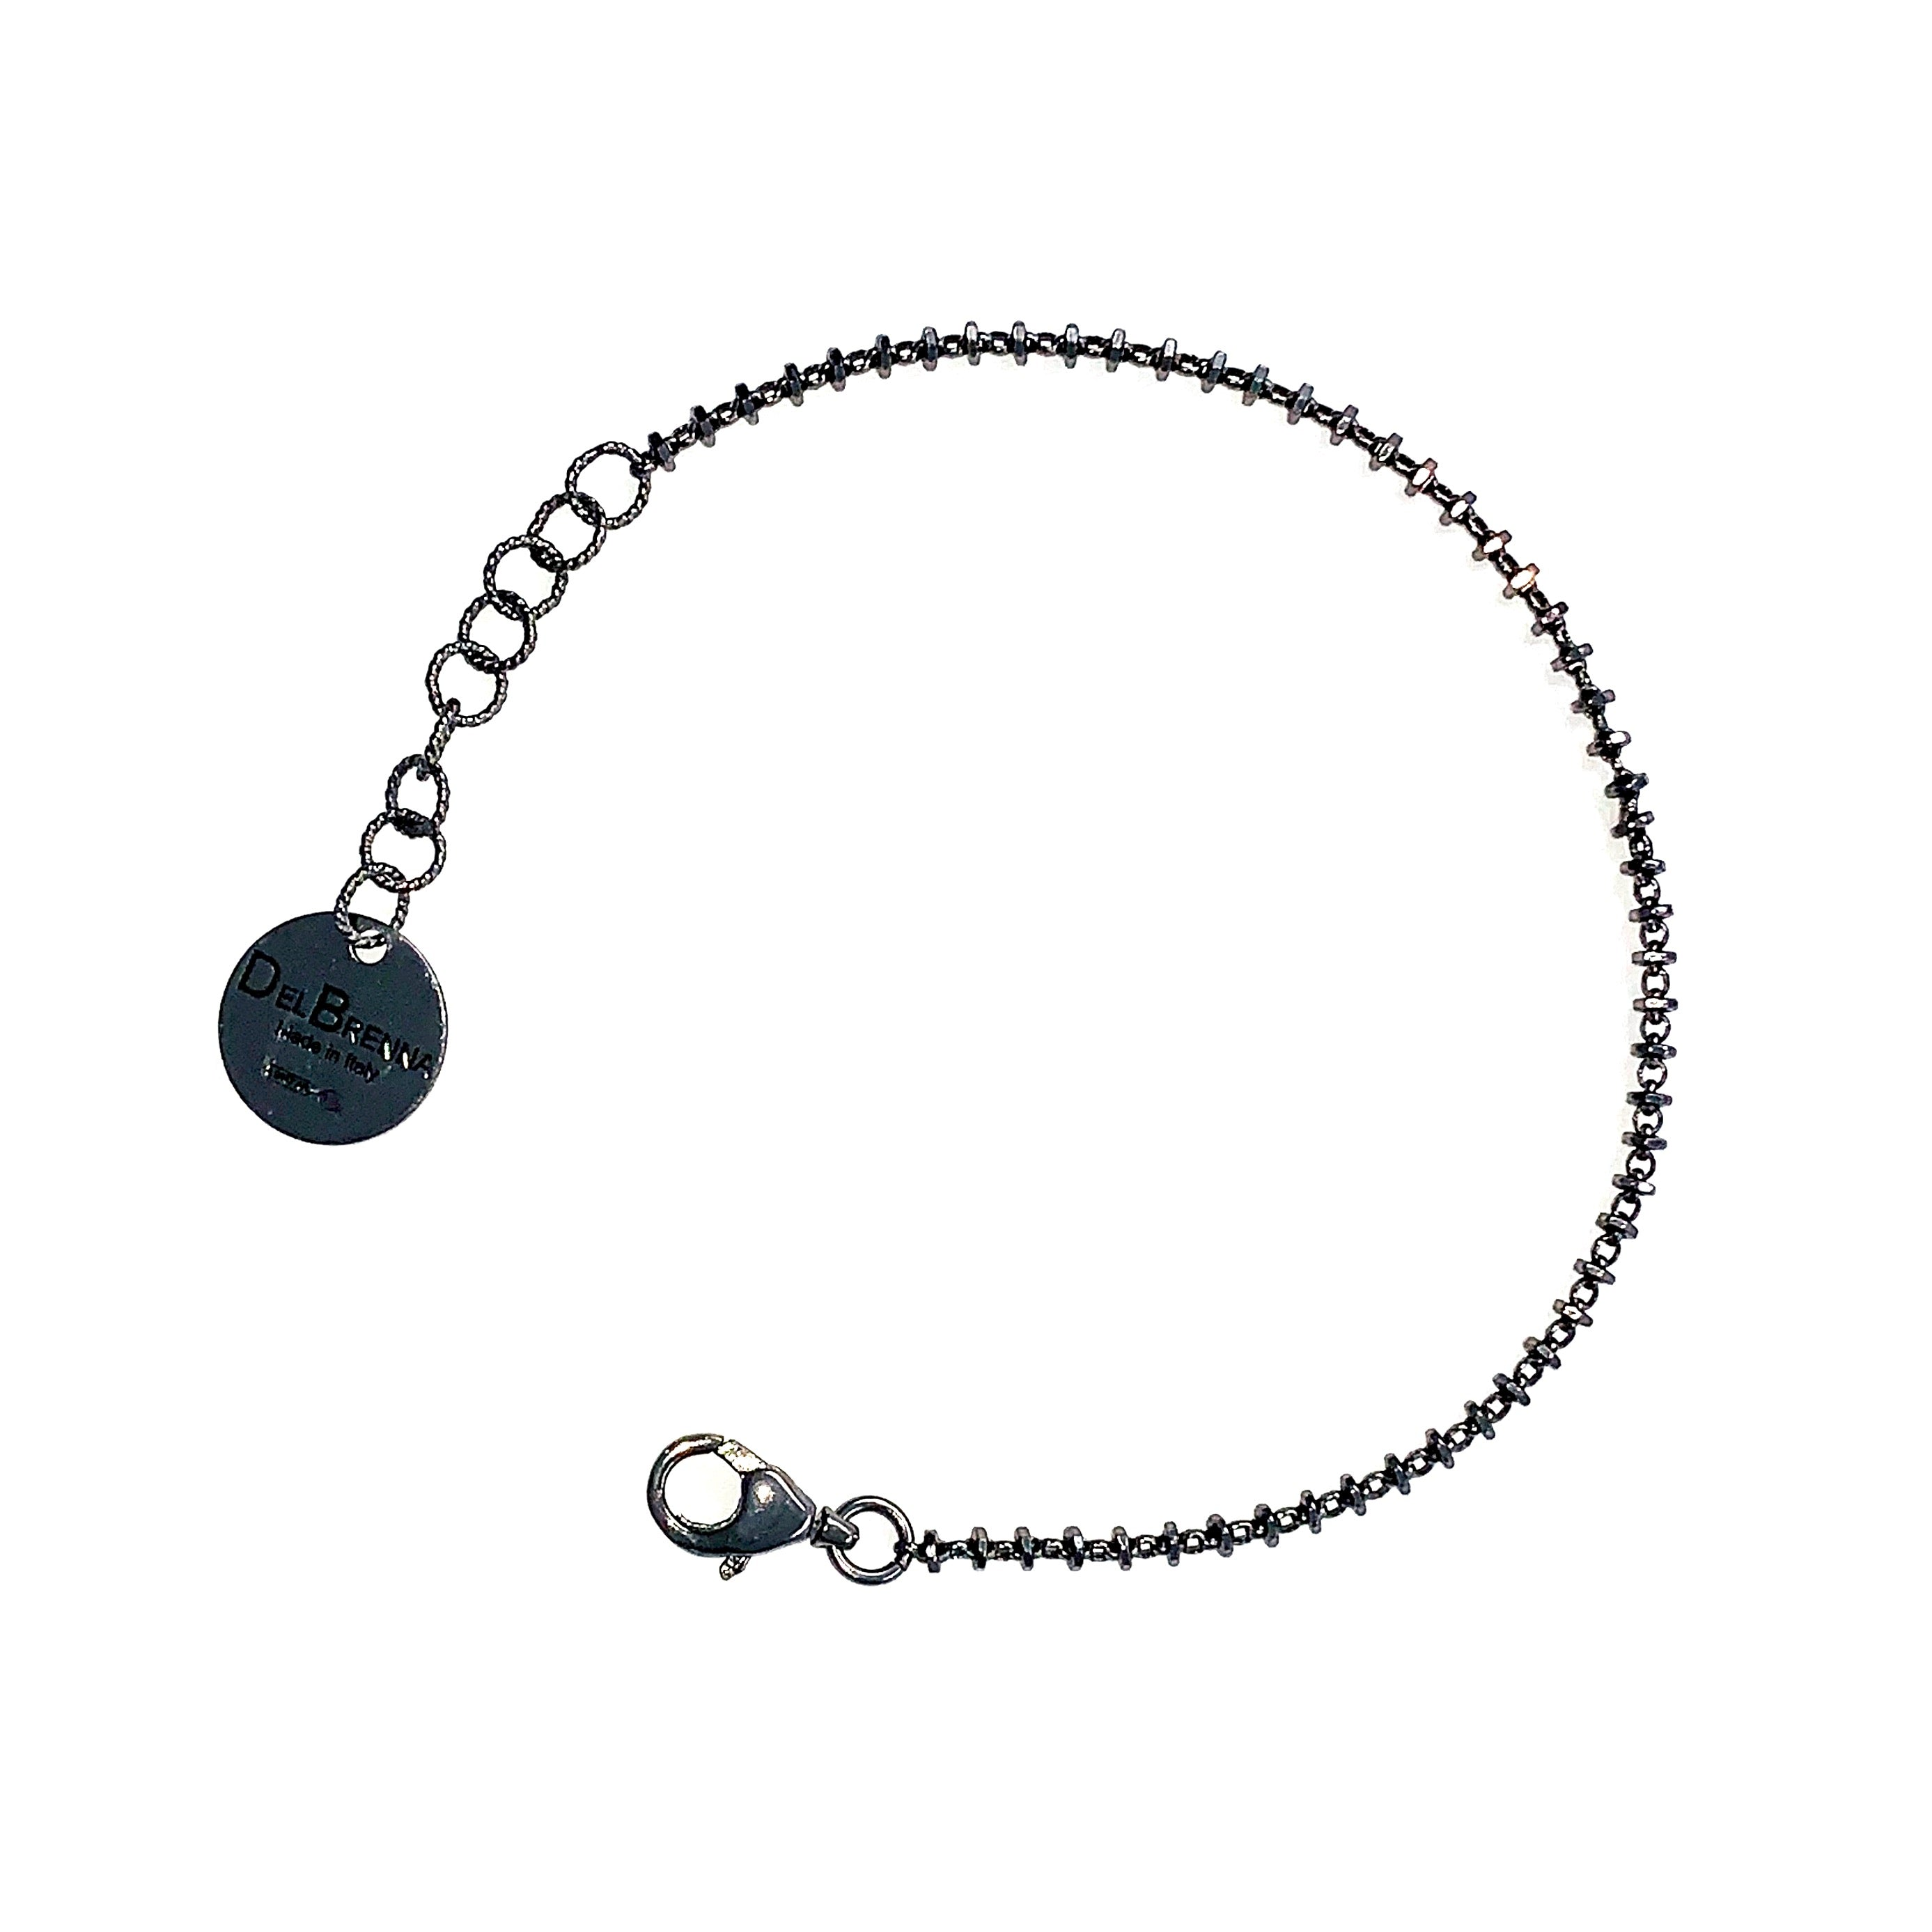 Luce Bracelet in Black